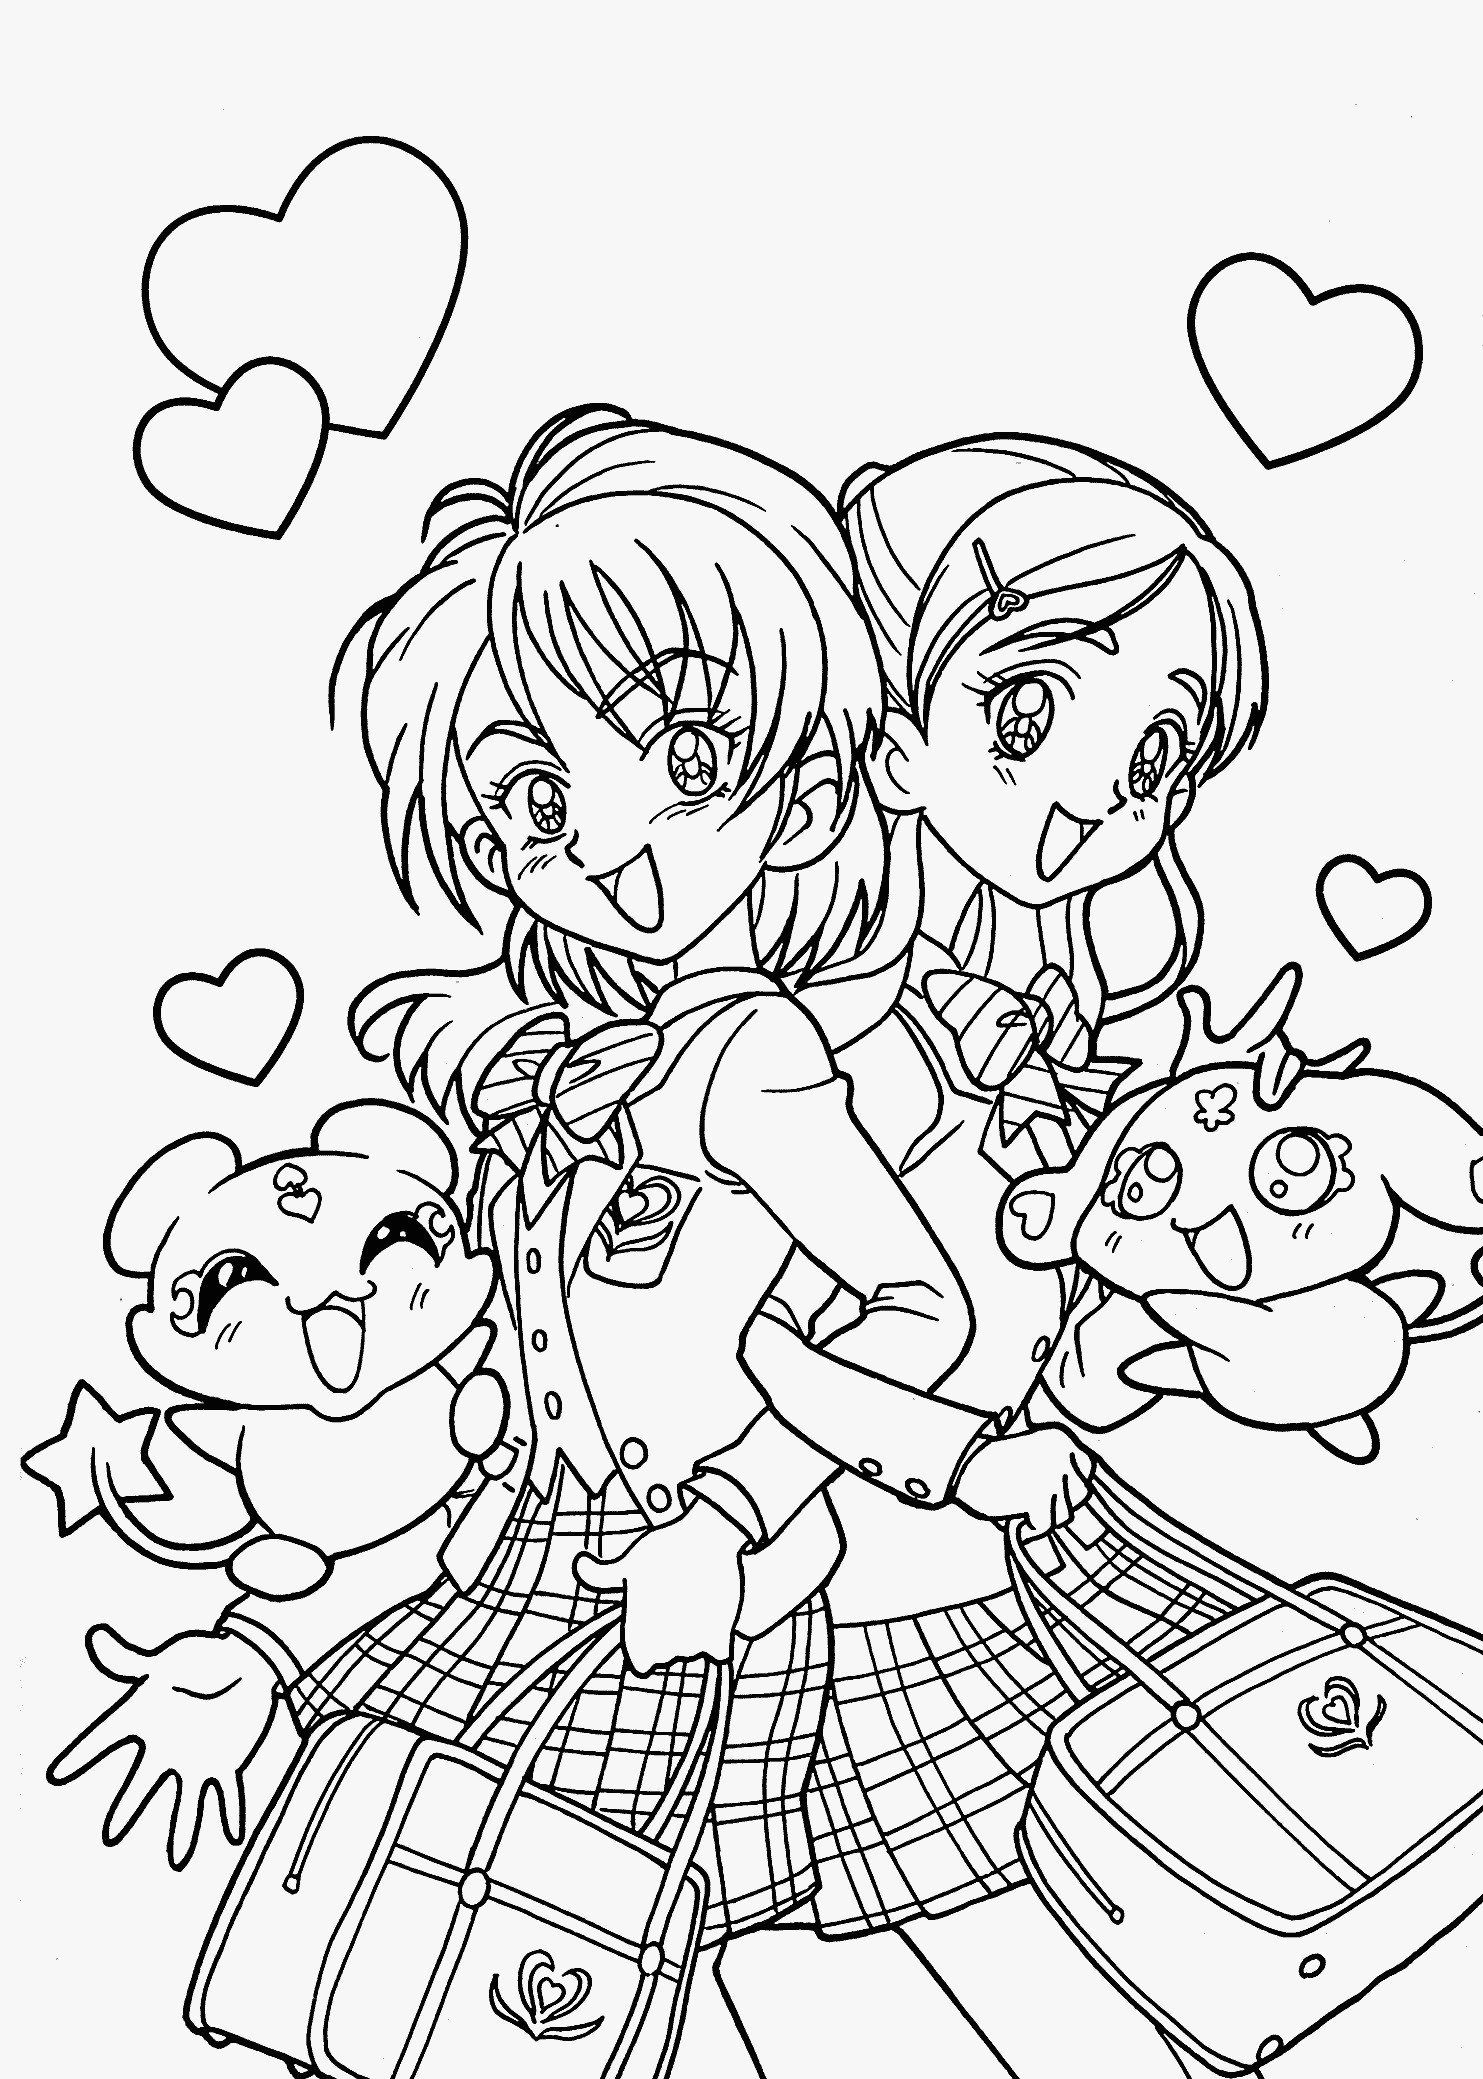 anime girl coloring pages to print anime coloring pages printable various styles k5 worksheets print coloring girl pages to anime